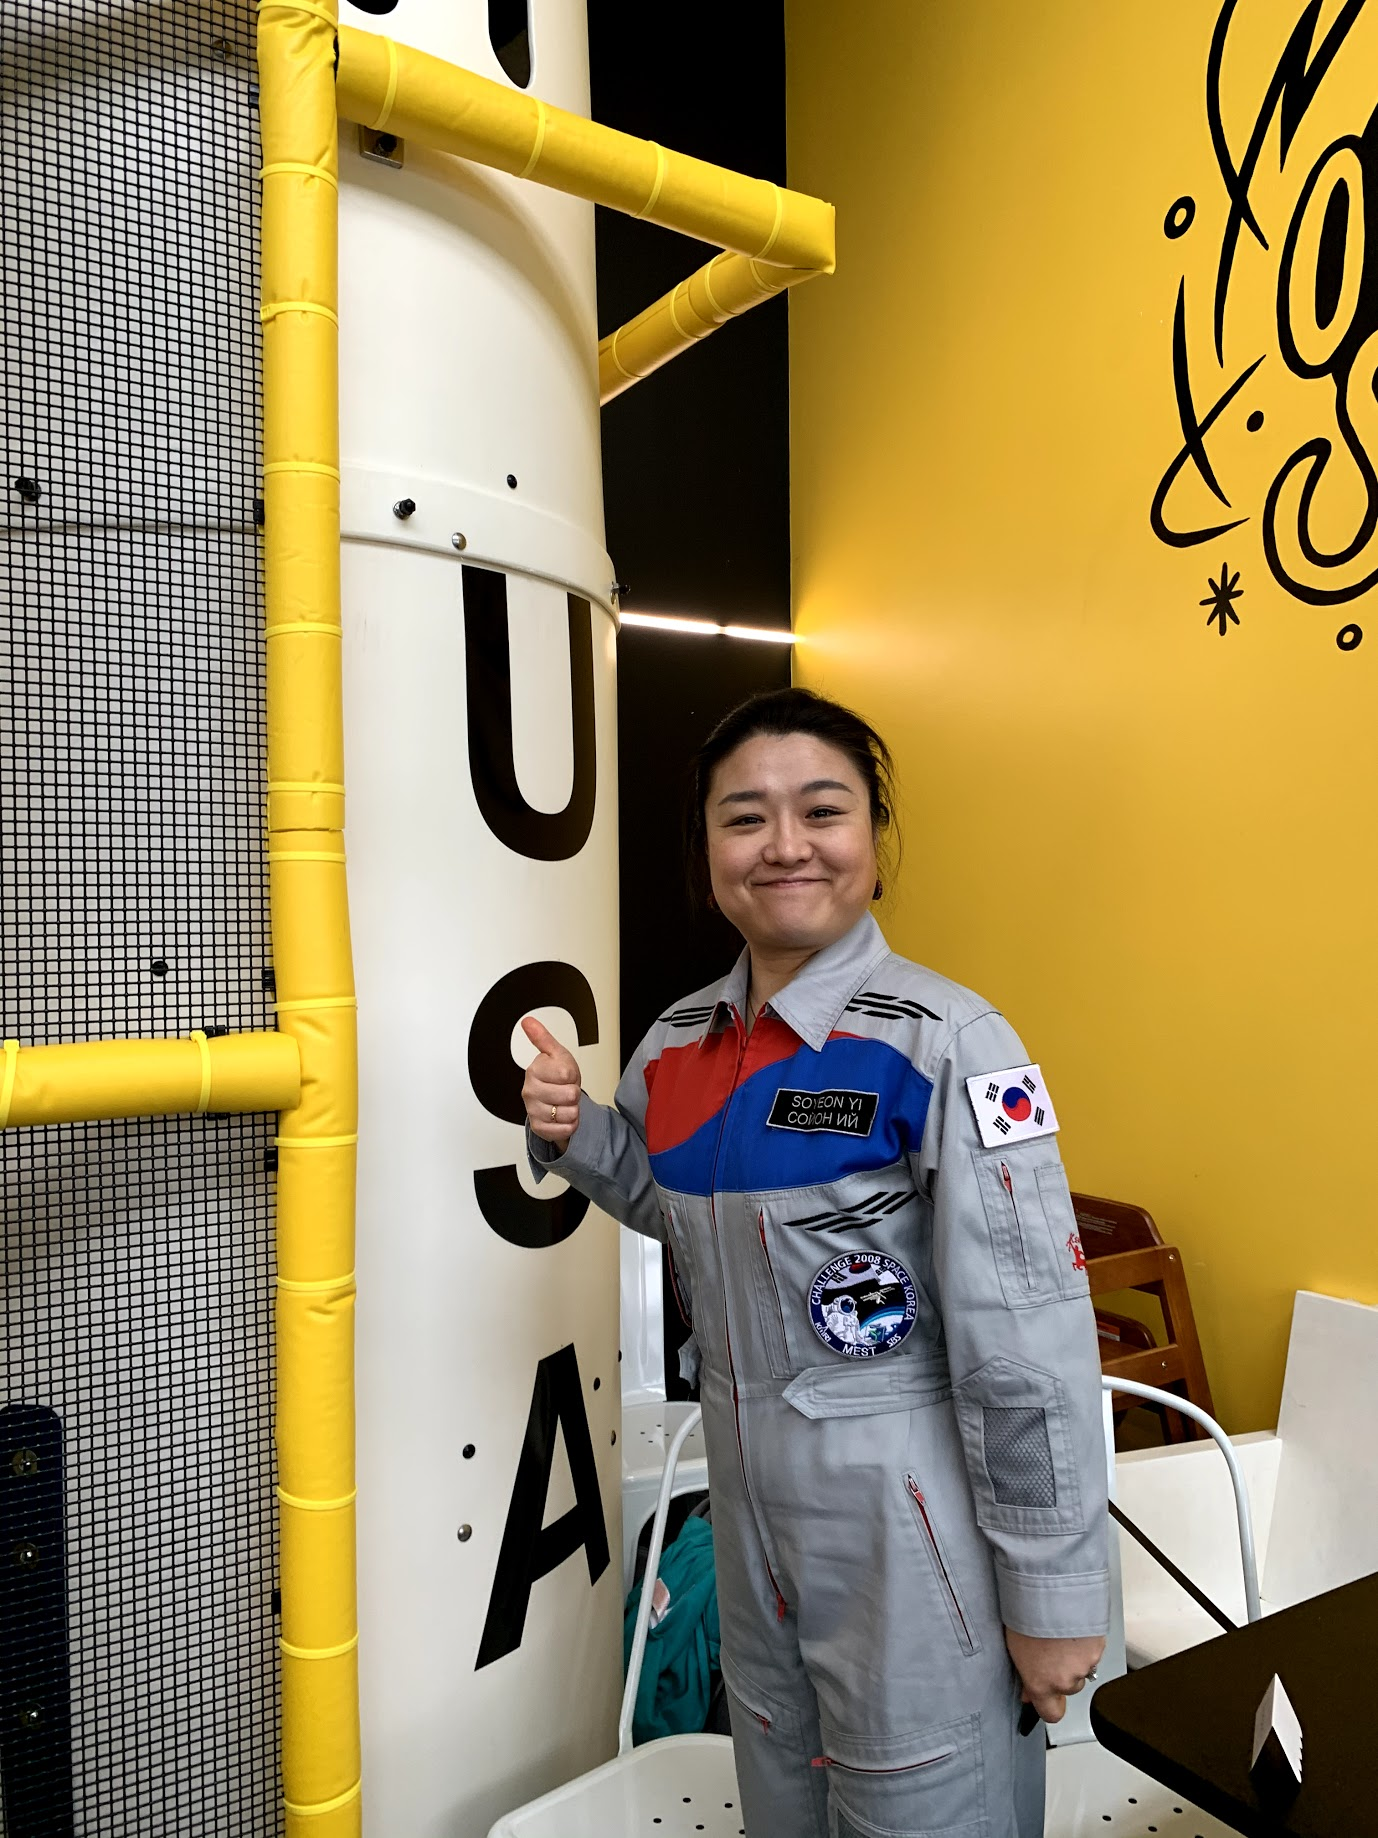 "Dr. Soyeon Yi, the first{&nbsp;}South Korean astronaut and 49th woman in space, stopped by to visit Outer Space Seattle this week, much to the kids joy! Outer Space Seattle is a space-themed indoor playspace for kids of all abilities that<a  href=""http://seattlerefined.com/lifestyle/this-new-play-space-is-out-of-this-world"" target=""_blank"" title=""http://seattlerefined.com/lifestyle/this-new-play-space-is-out-of-this-world"">{&nbsp;}just opened after one passionate mom's journey from a kickstarter</a>, to a brick and mortar play area. Dr. Yi has just visited Alki Elementary when she swung by the play space, where she had{&nbsp;}lunch, spoke to kids about what it was like to travel through space, answered questions, talked about how important it is to exercise your body, and signed the custom built rocket. (Image: Outer Space Seattle)"